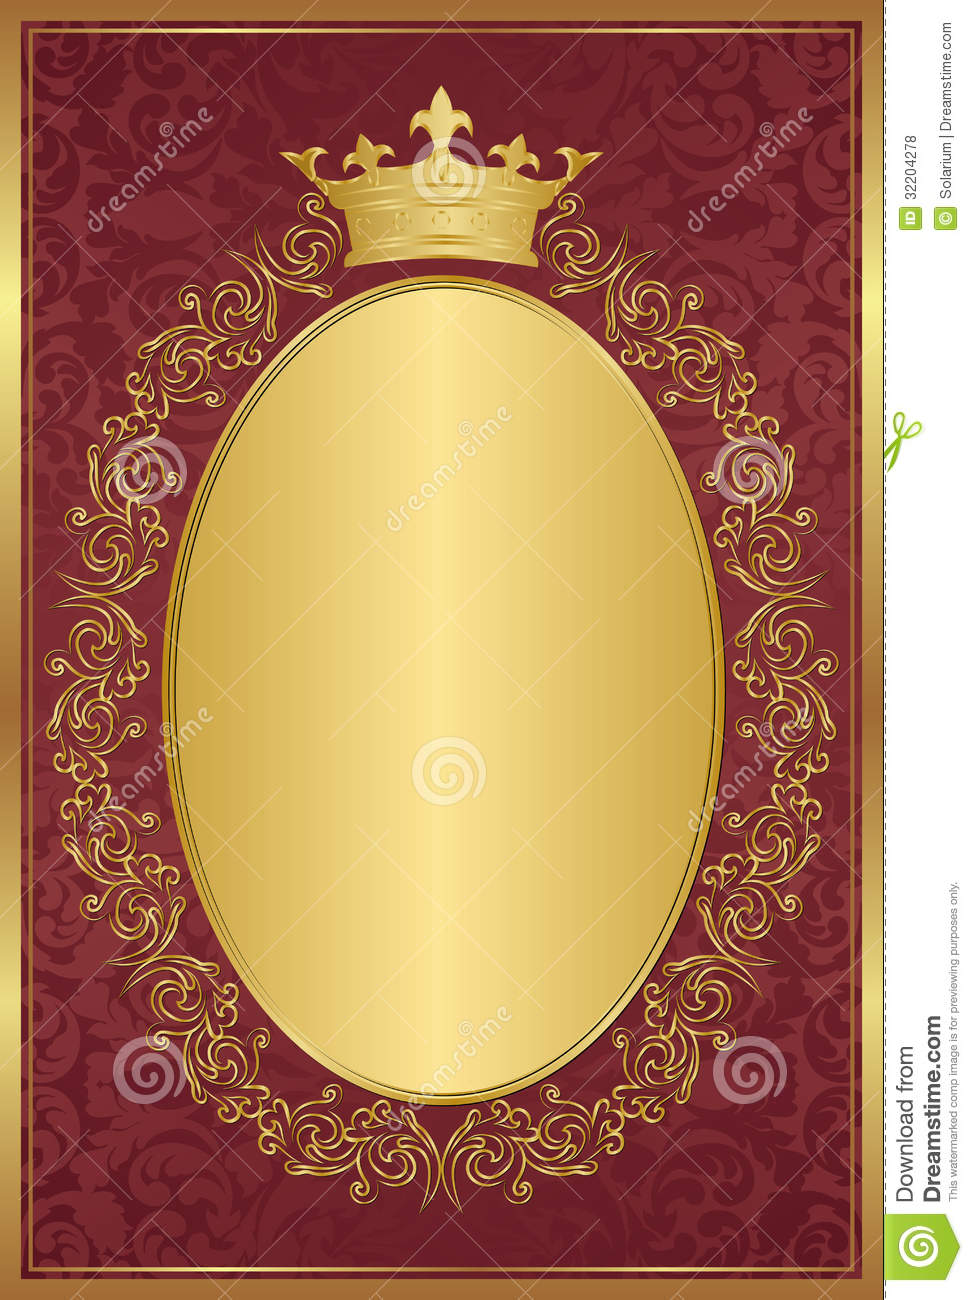 Red background with decorative golden frame and crown.